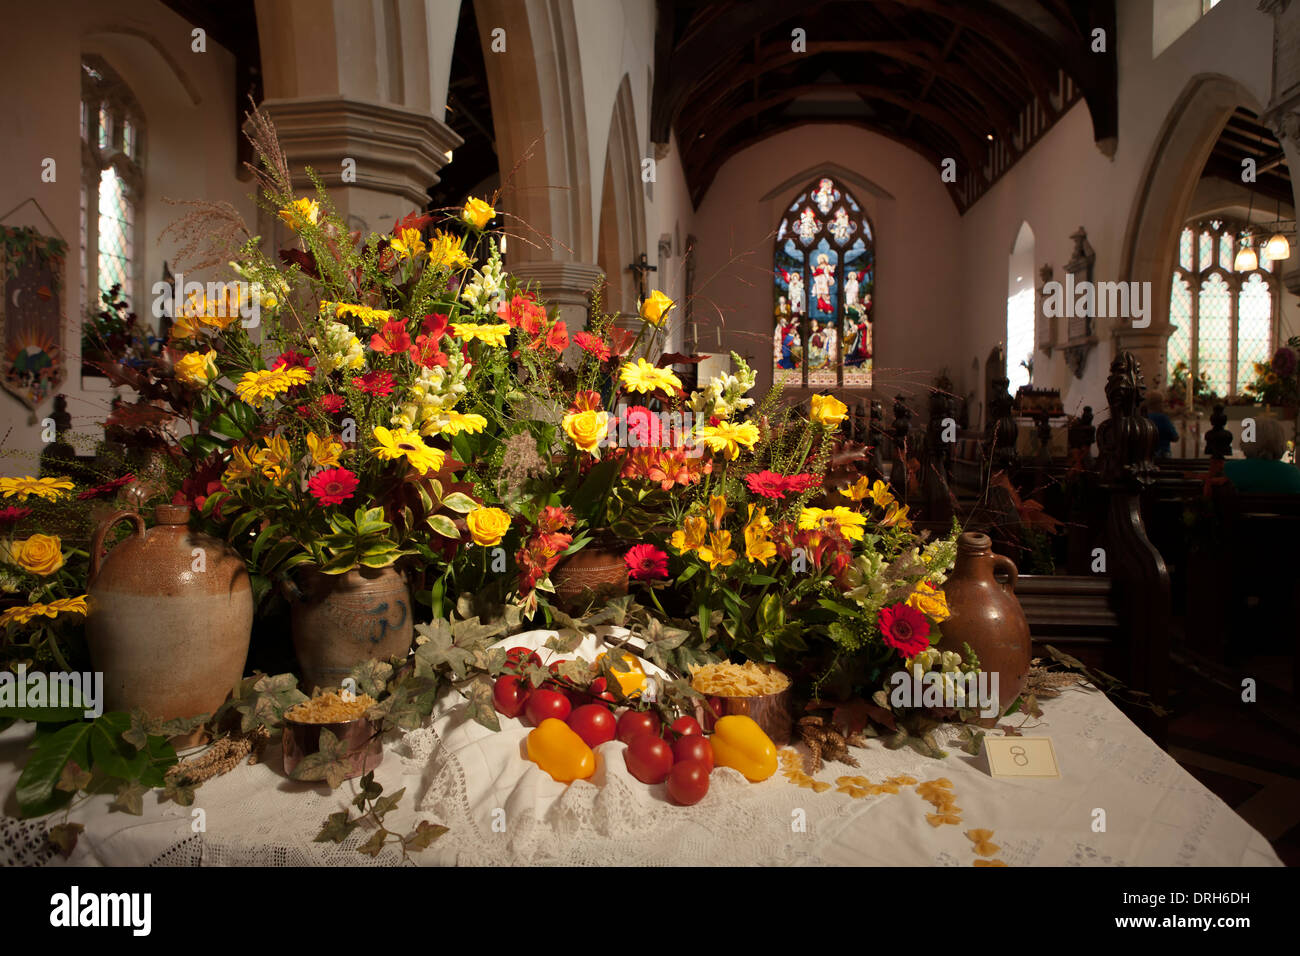 Harvest Festival Church High Resolution Stock Photography And Images Alamy